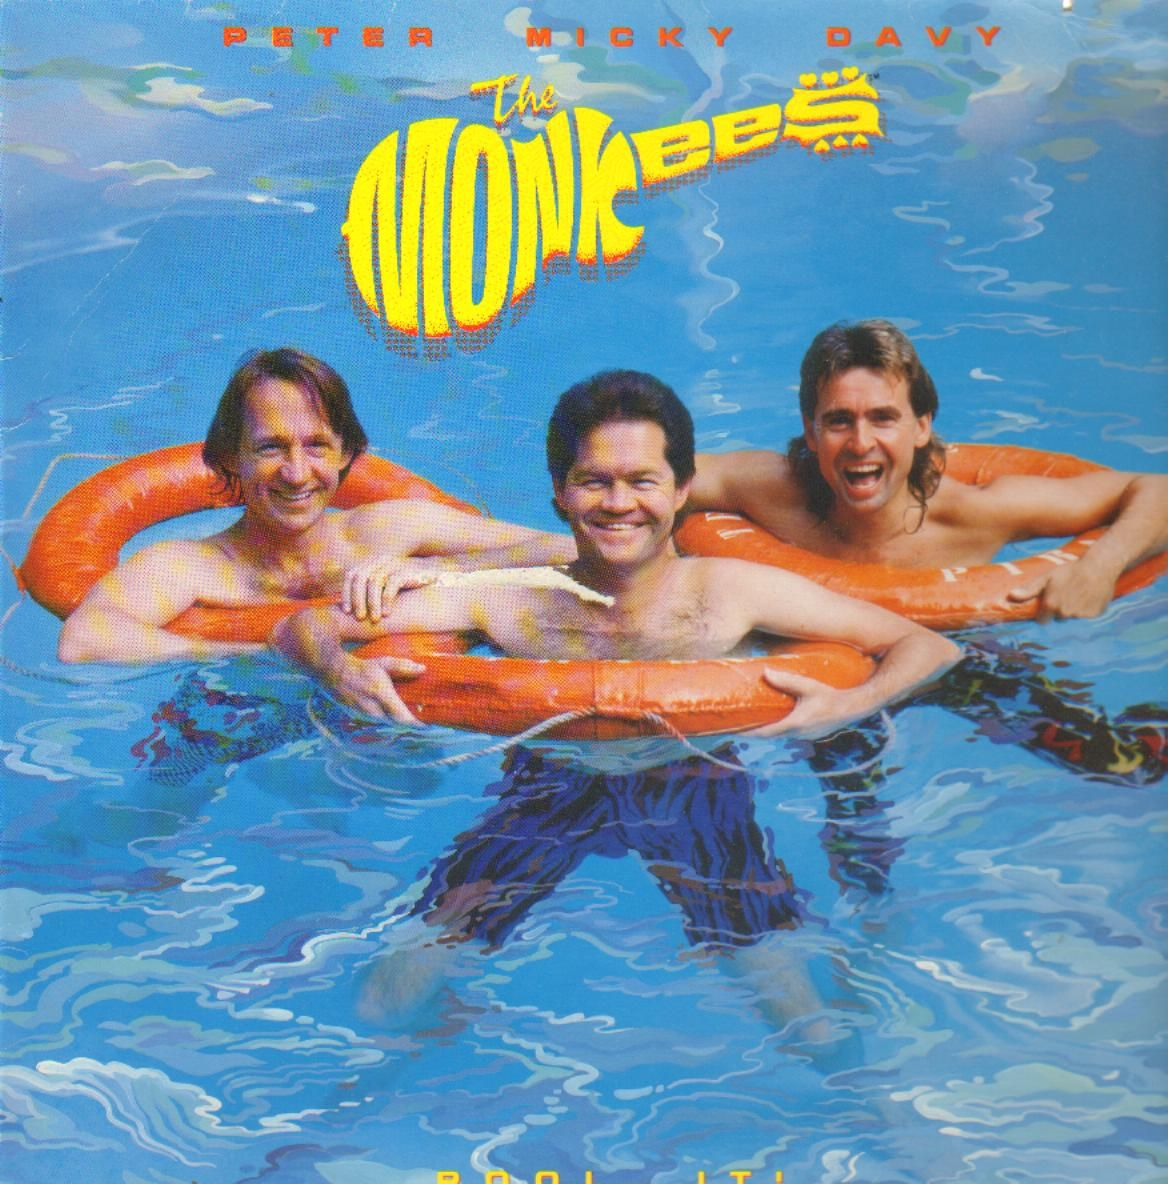 Alum artwork for 'Pool It!' by The Monkees